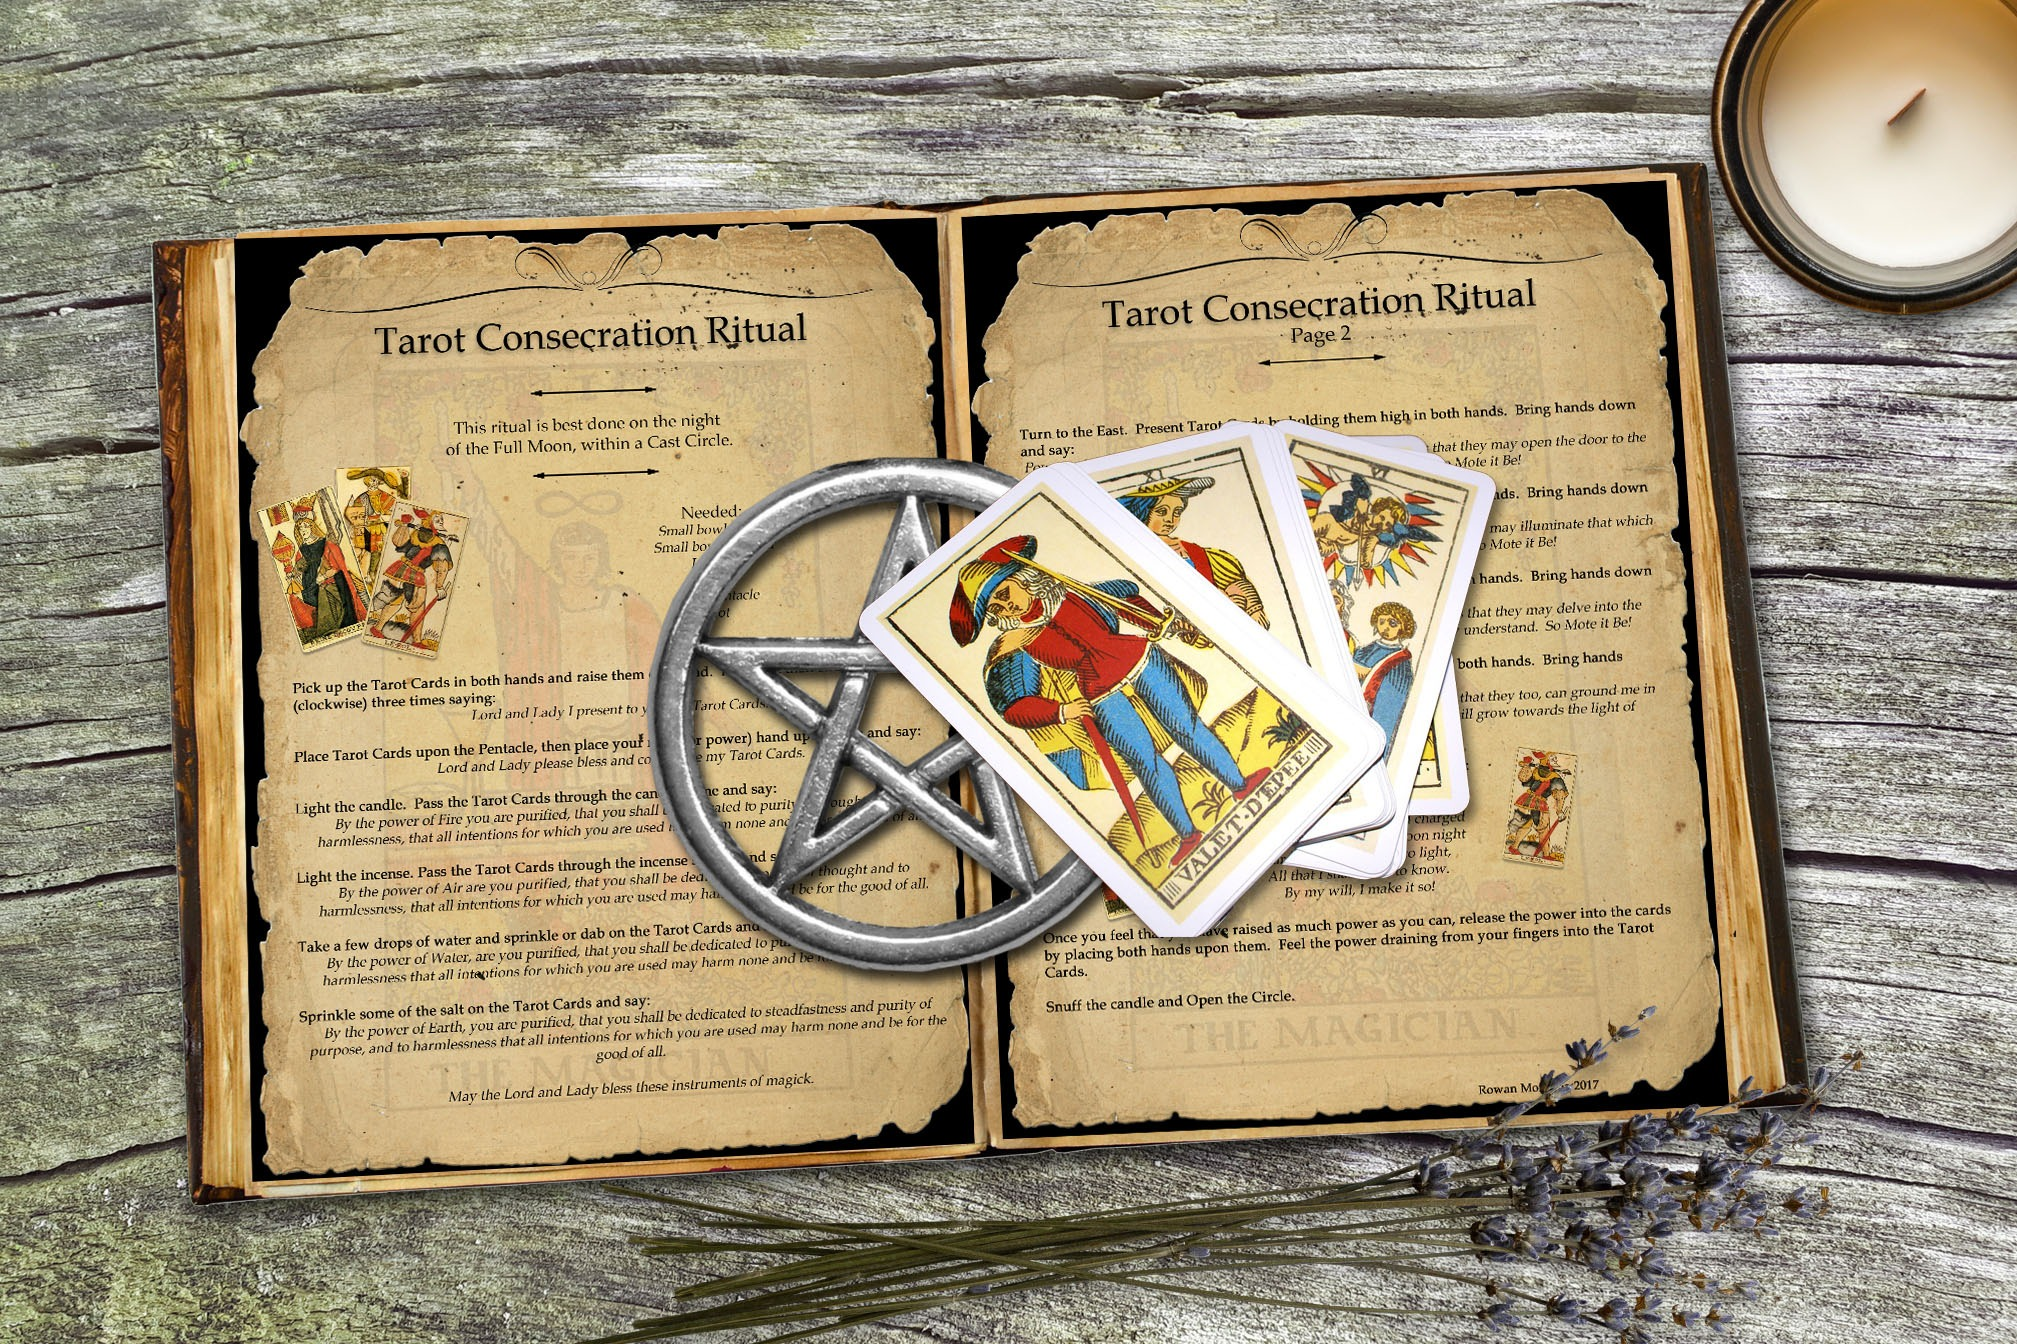 TAROT CONSECRATION RITUAL - 2 pages